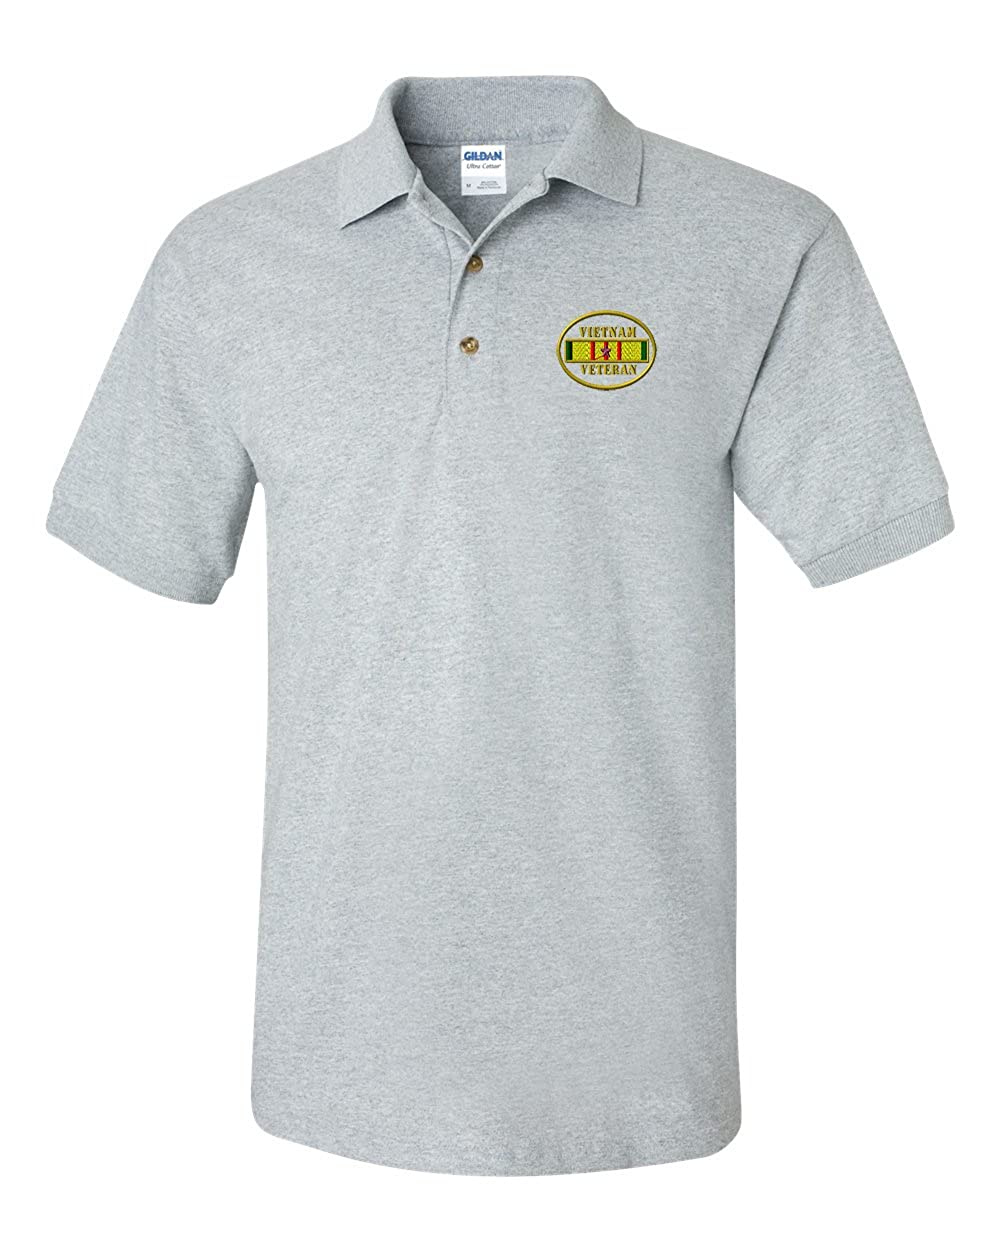 Vietnam Veteran Custom Personalized Embroidery Embroidered Golf Polo